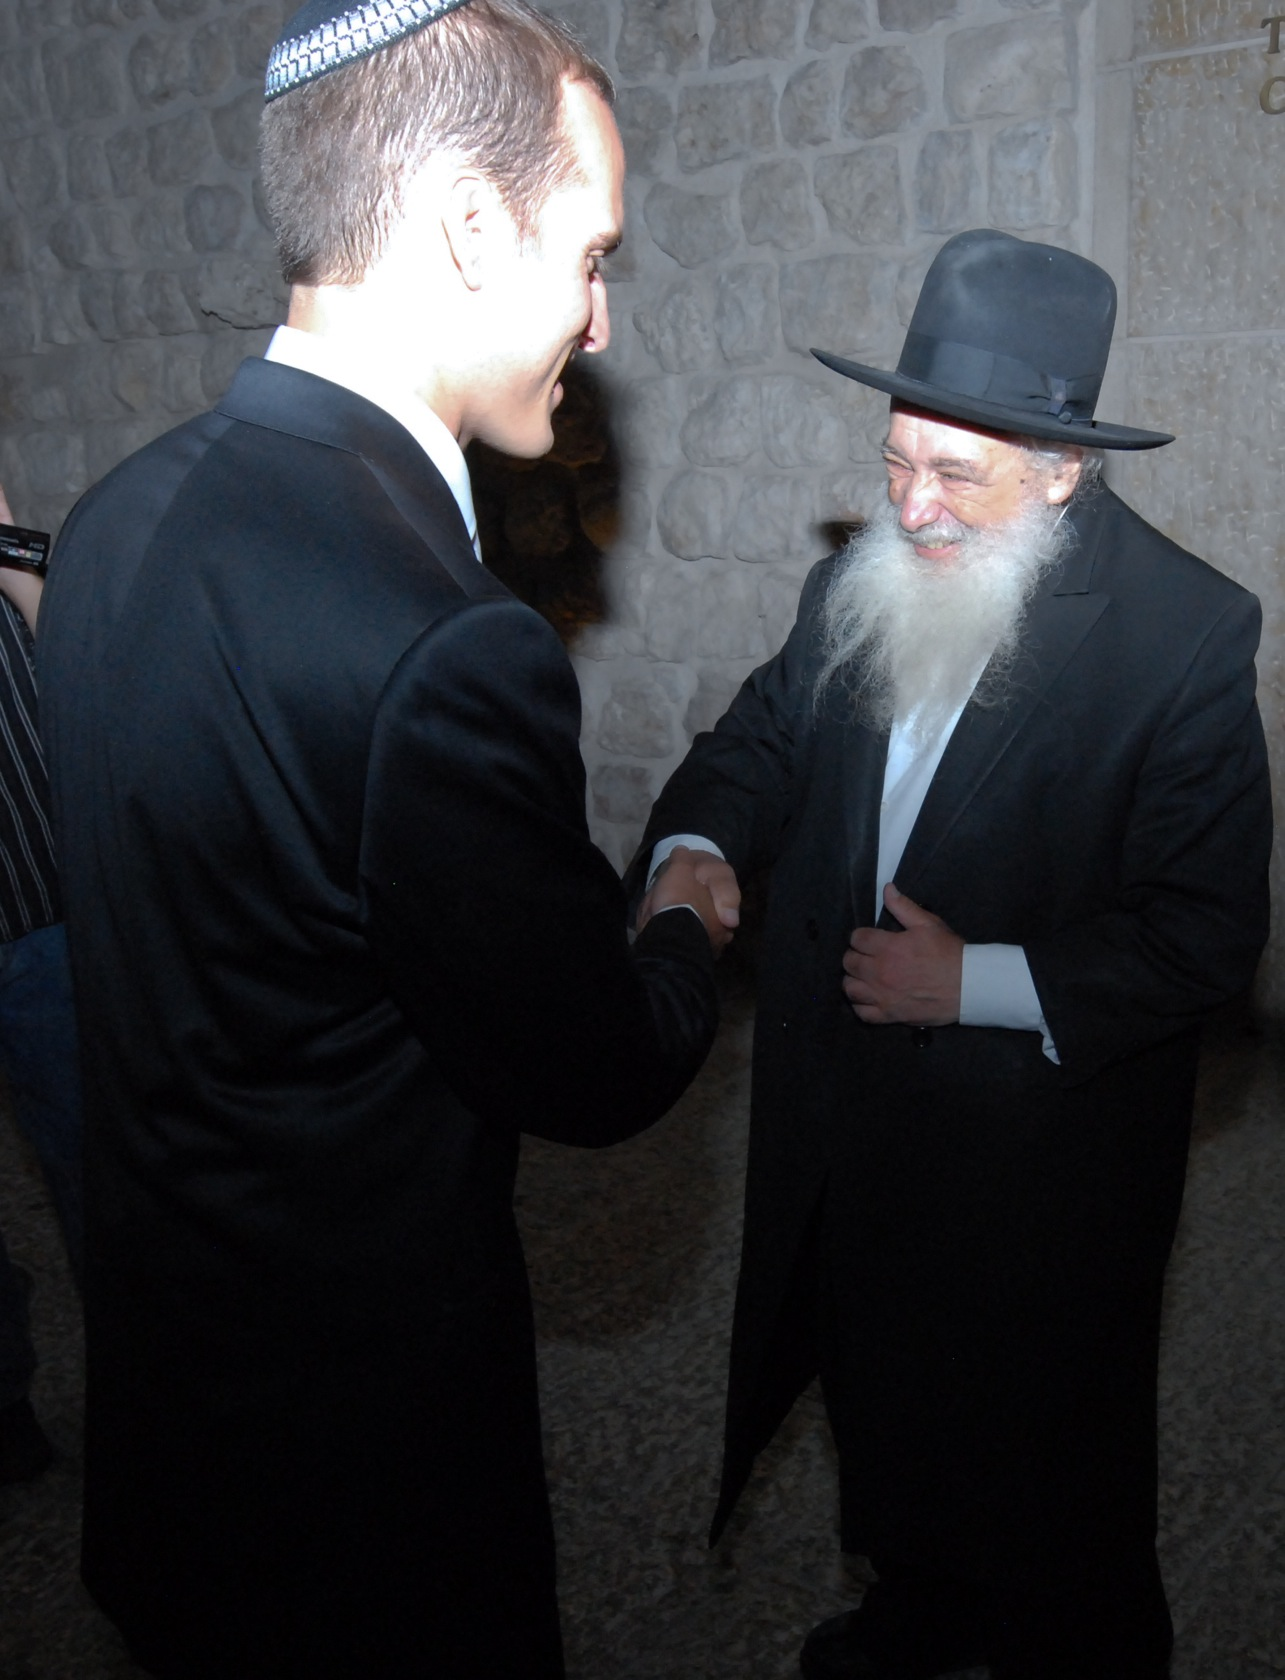 Rabbi Ben meets a tzaddik in the streets of Jerusalem, Israel, where good role models are everywhere